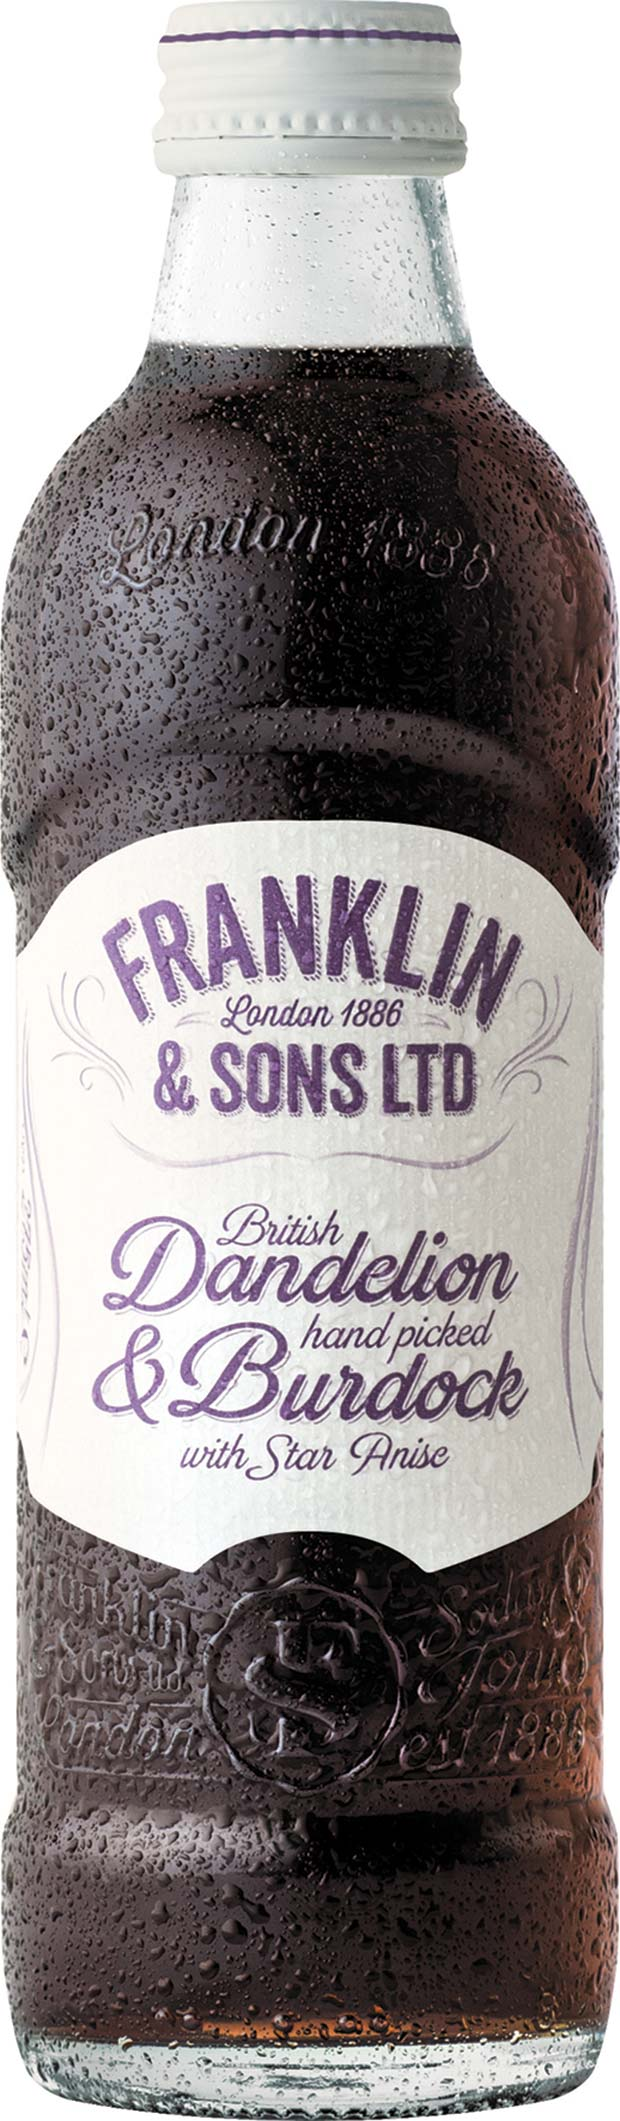 dandelion-burdock-soft-drink6